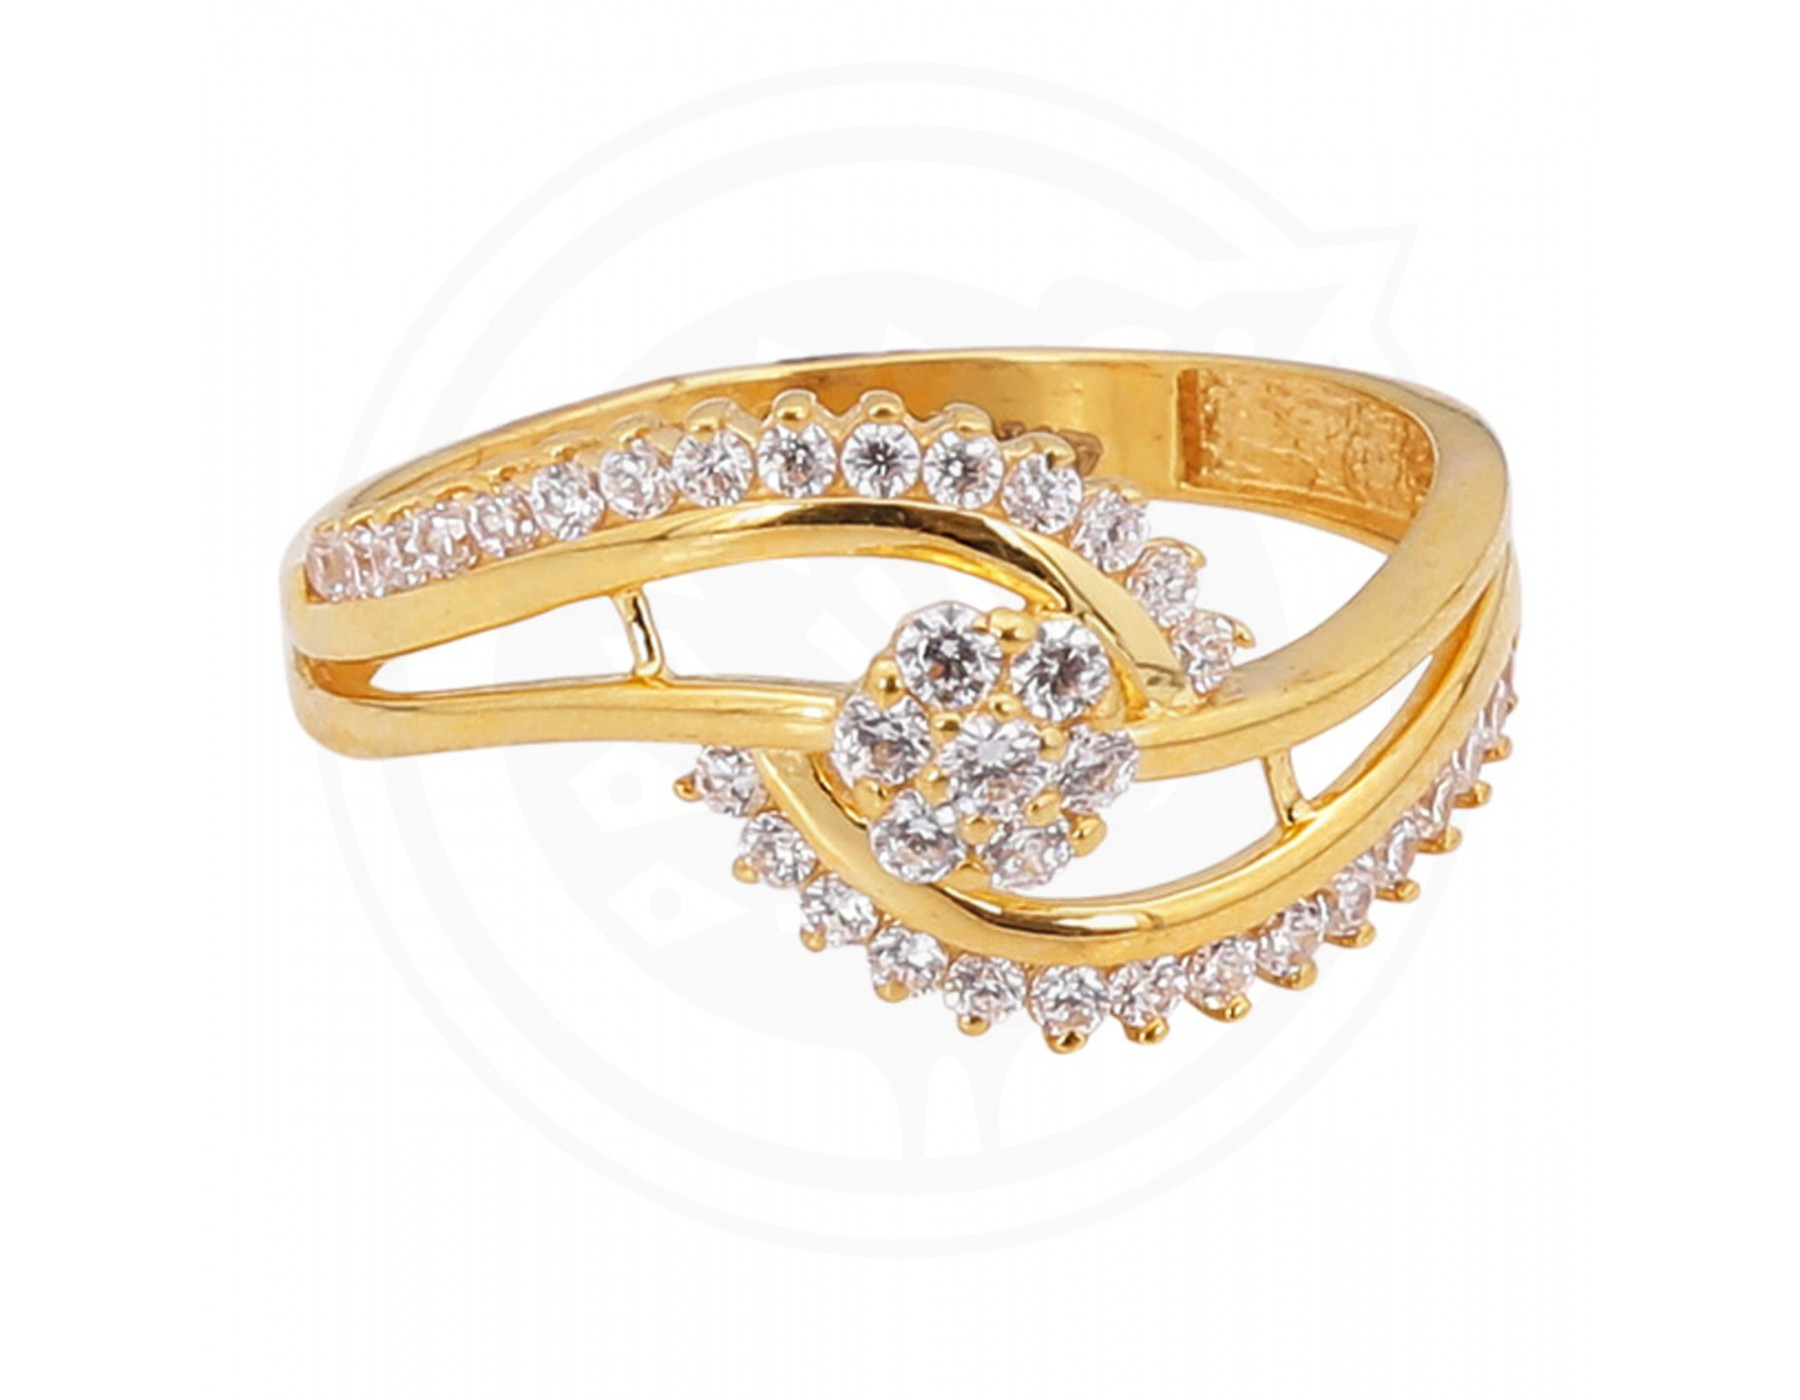 mimi gold mg plain oval exclusive et toi ring signet rings product